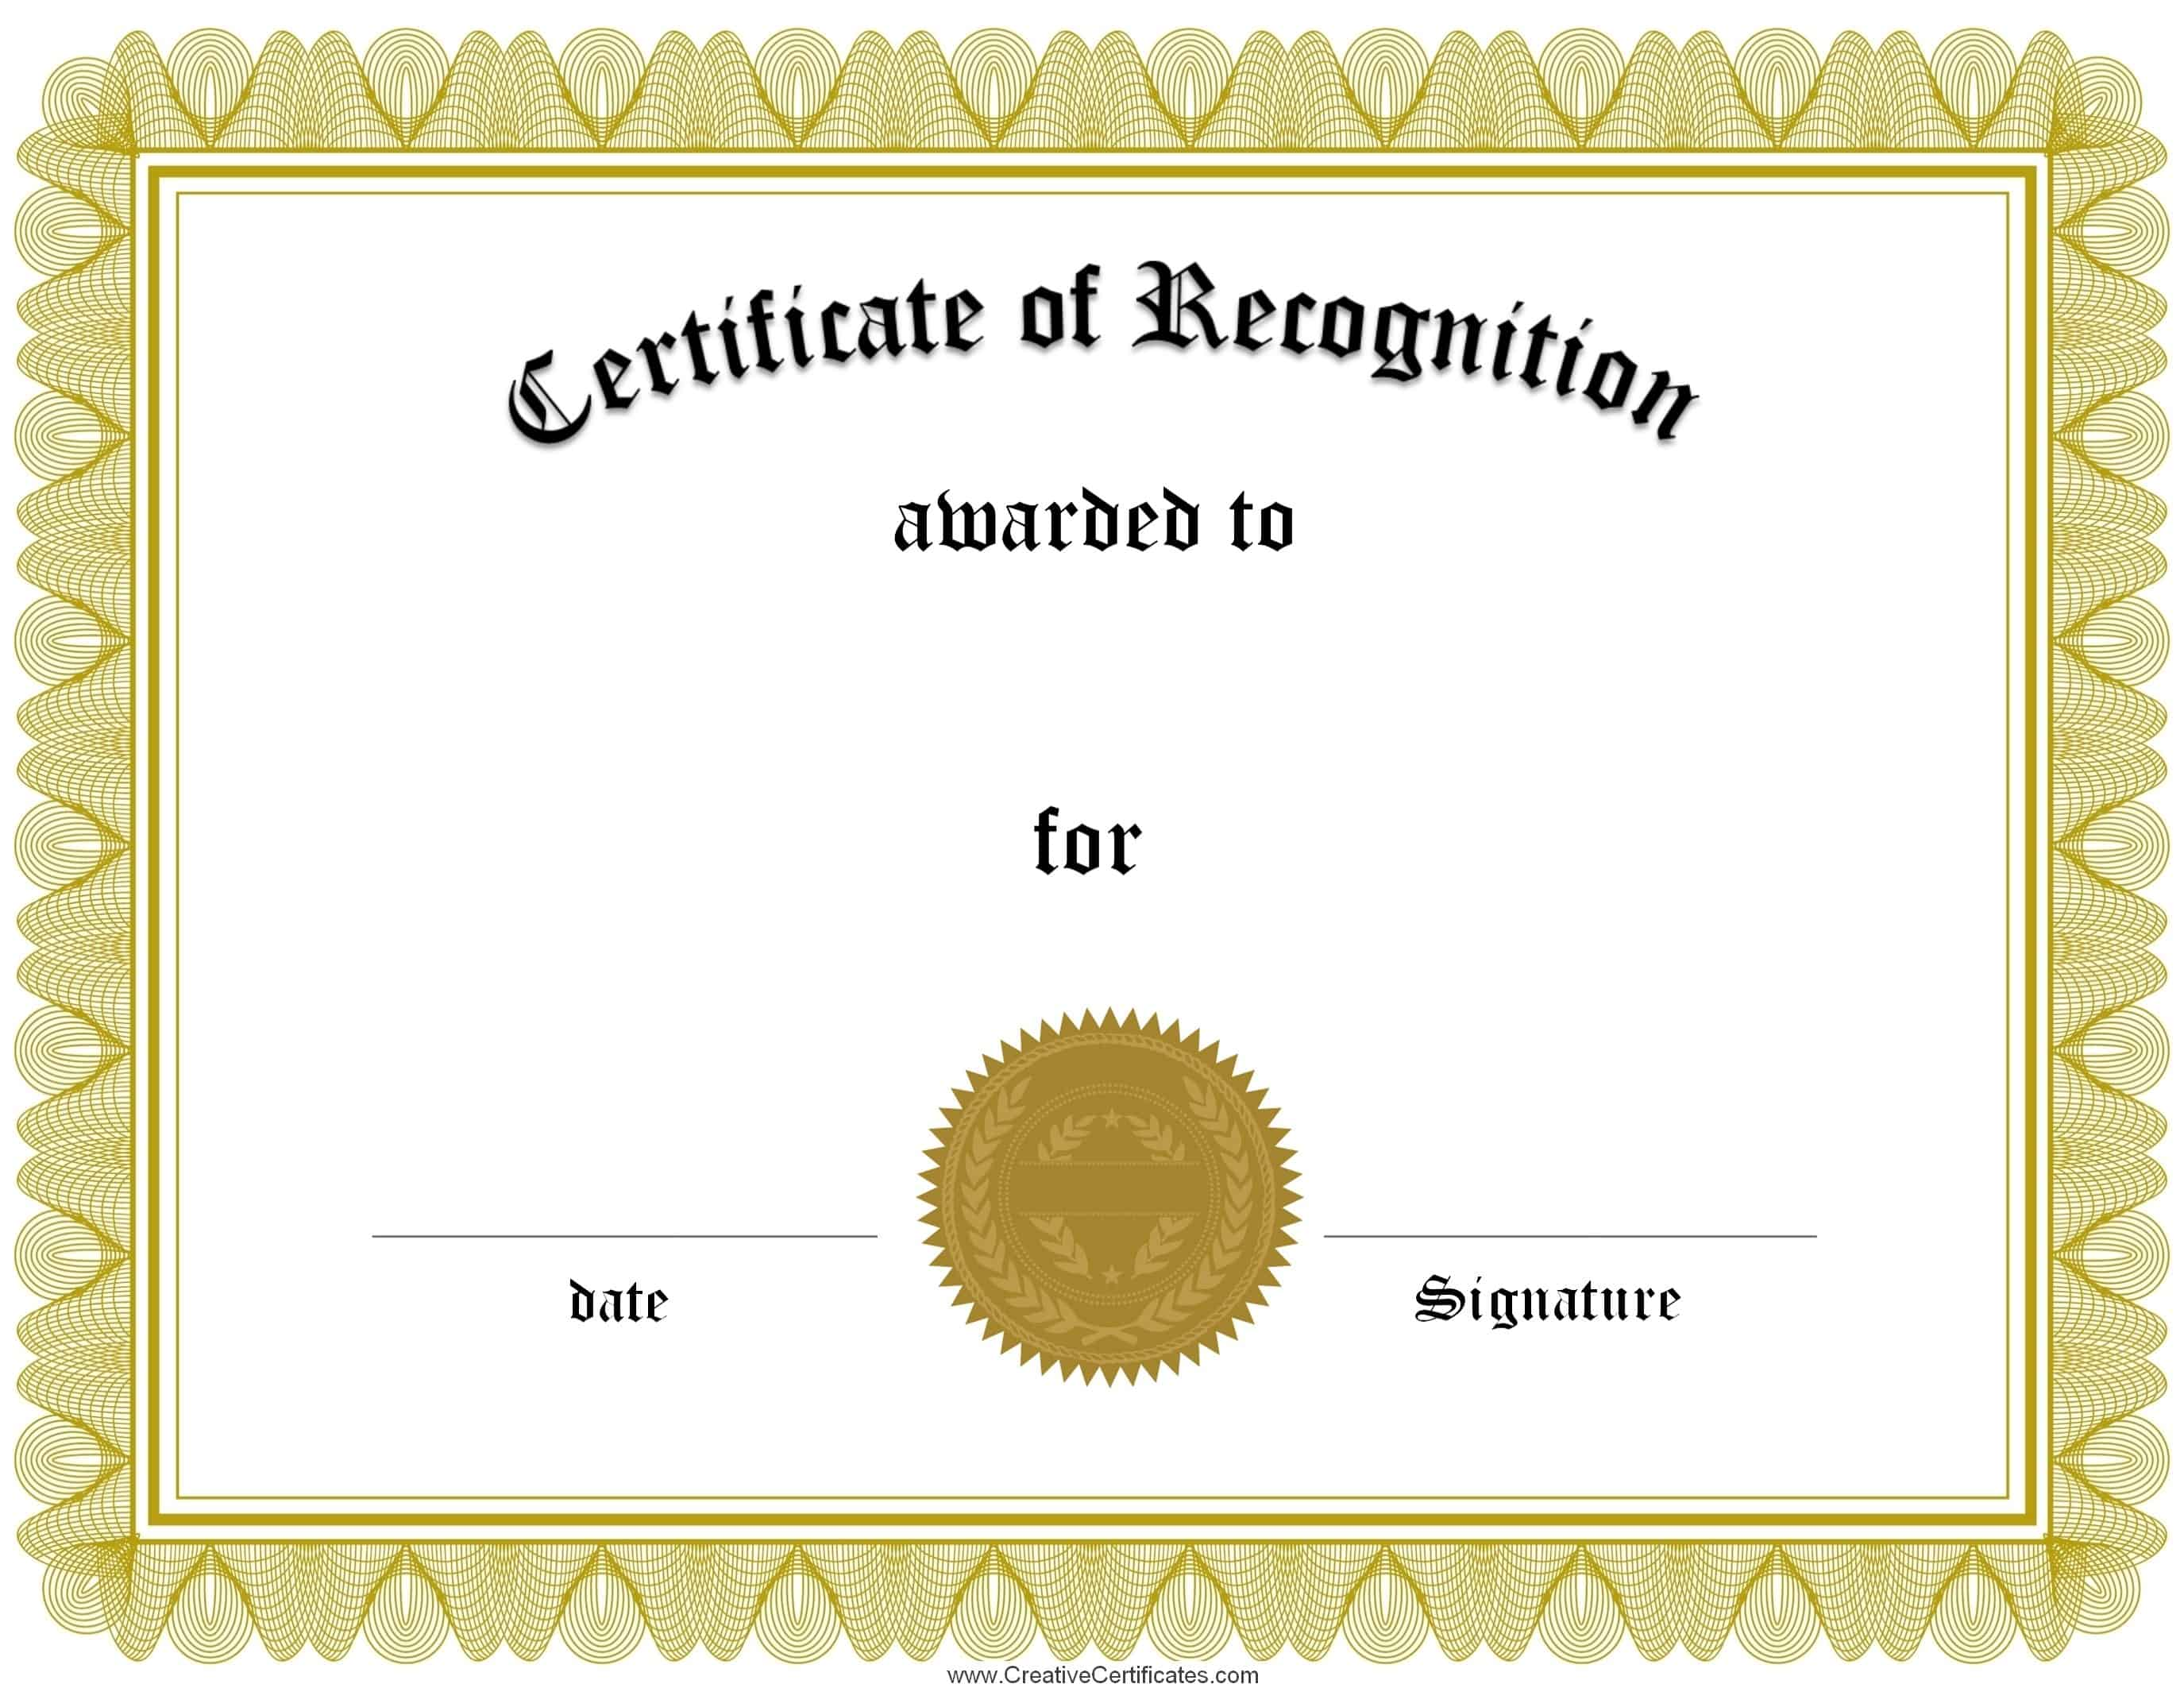 Free certificate of recognition template customize online for Prize certificates templates free